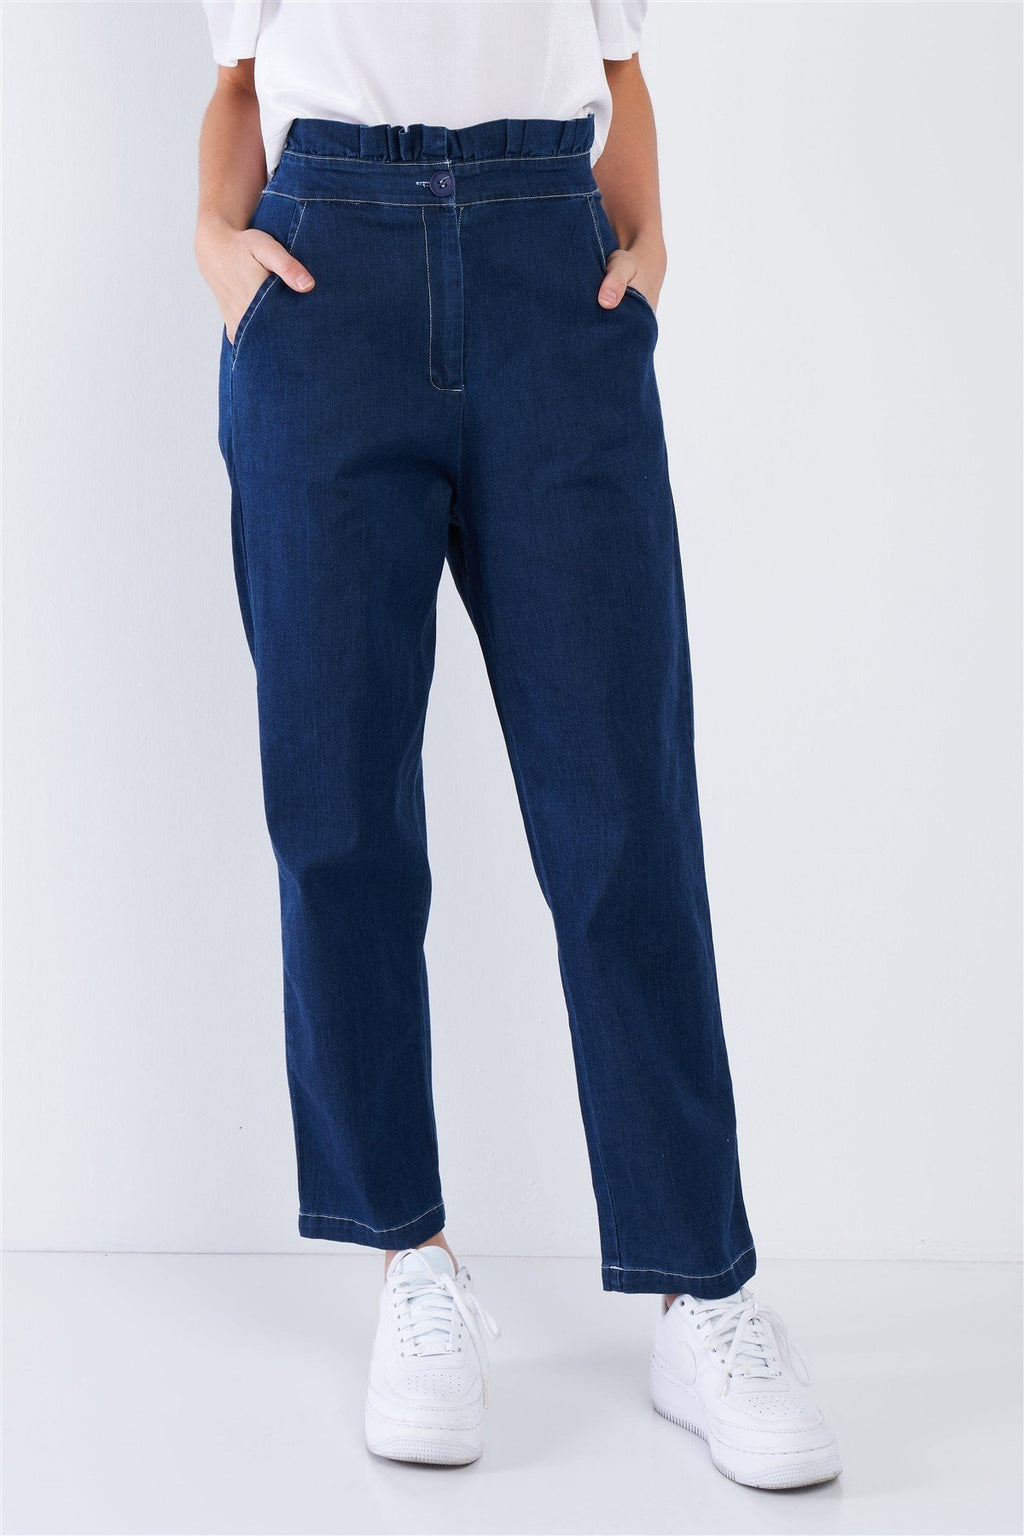 Blue Retro Frill Wrap Denim Pants